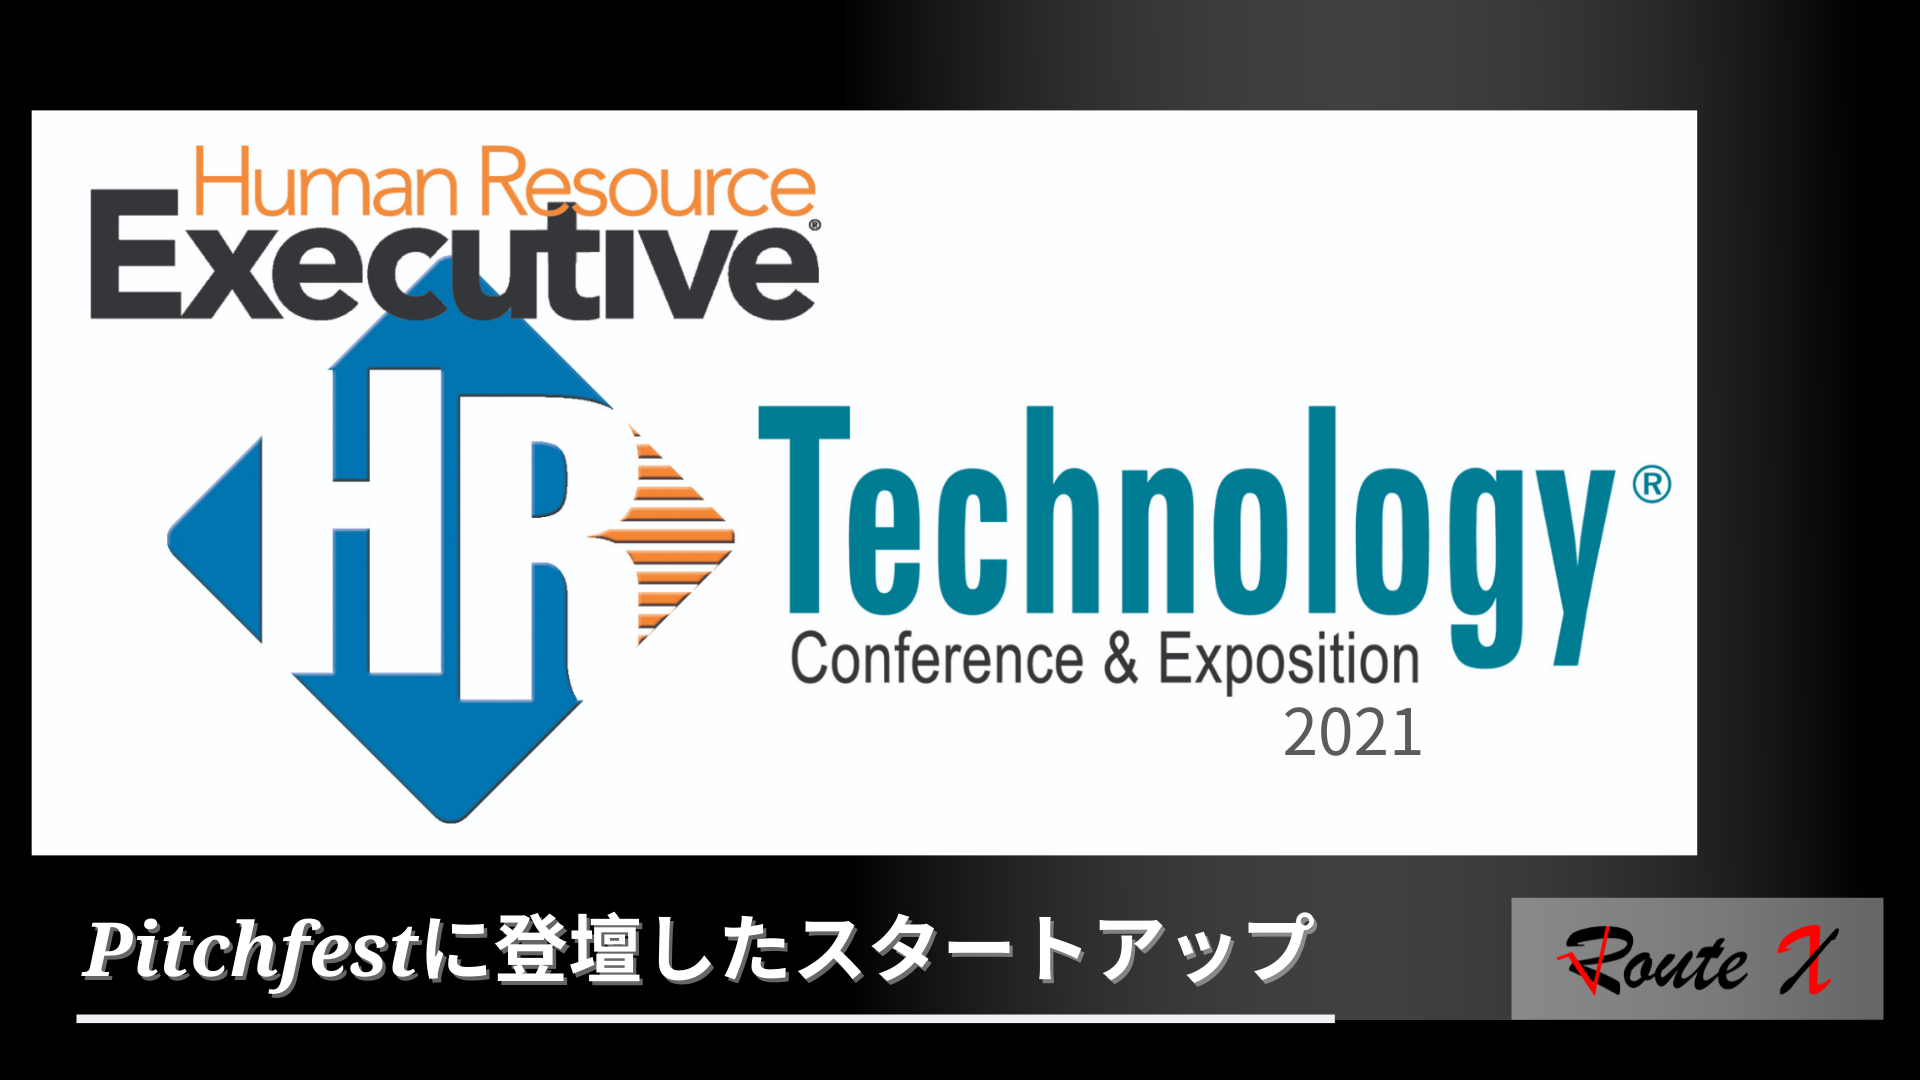 HR Technology Conference & Expo 2021 Pitchfestに登壇したスタートアップ